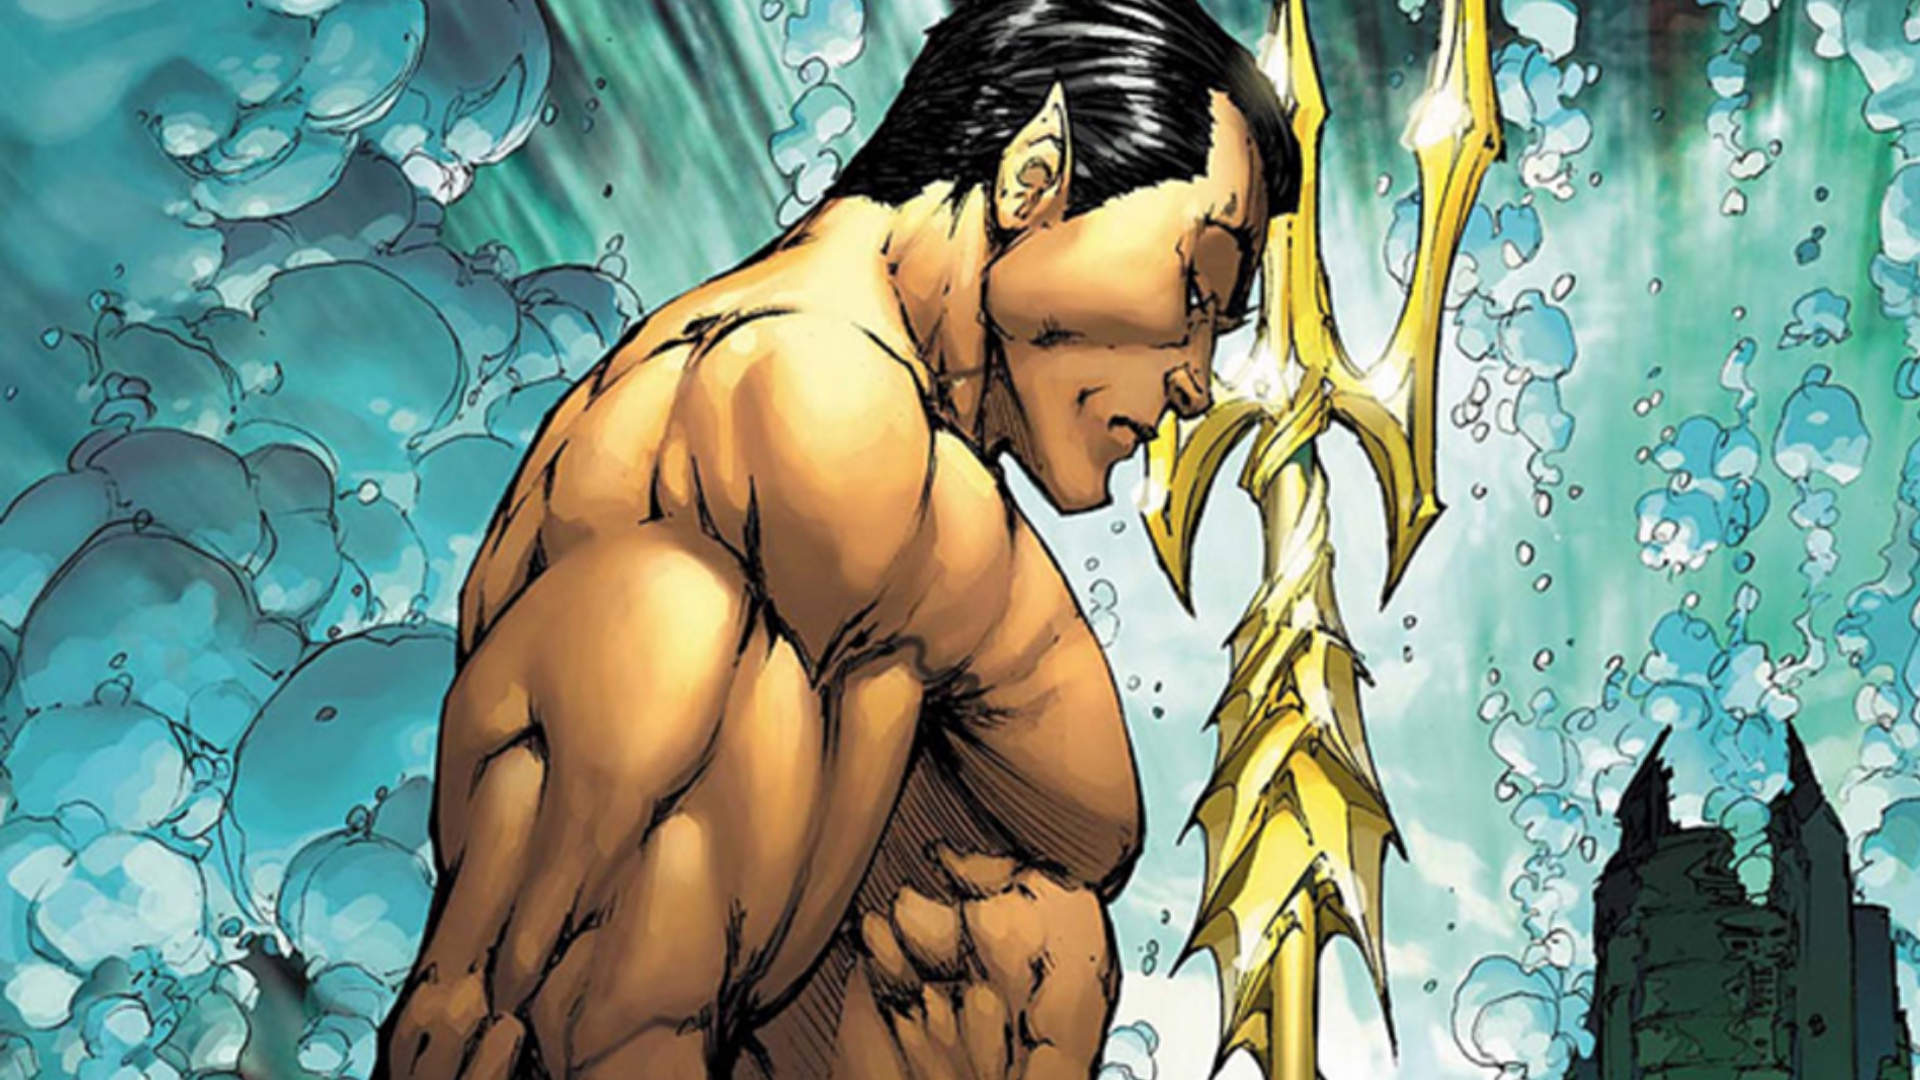 marvel-studios-is-looking-to-cast-a-character-who-is-a-ruler-of-an-ancient-kingdom-and-fans-think-its-sub-mariner-social.jpg